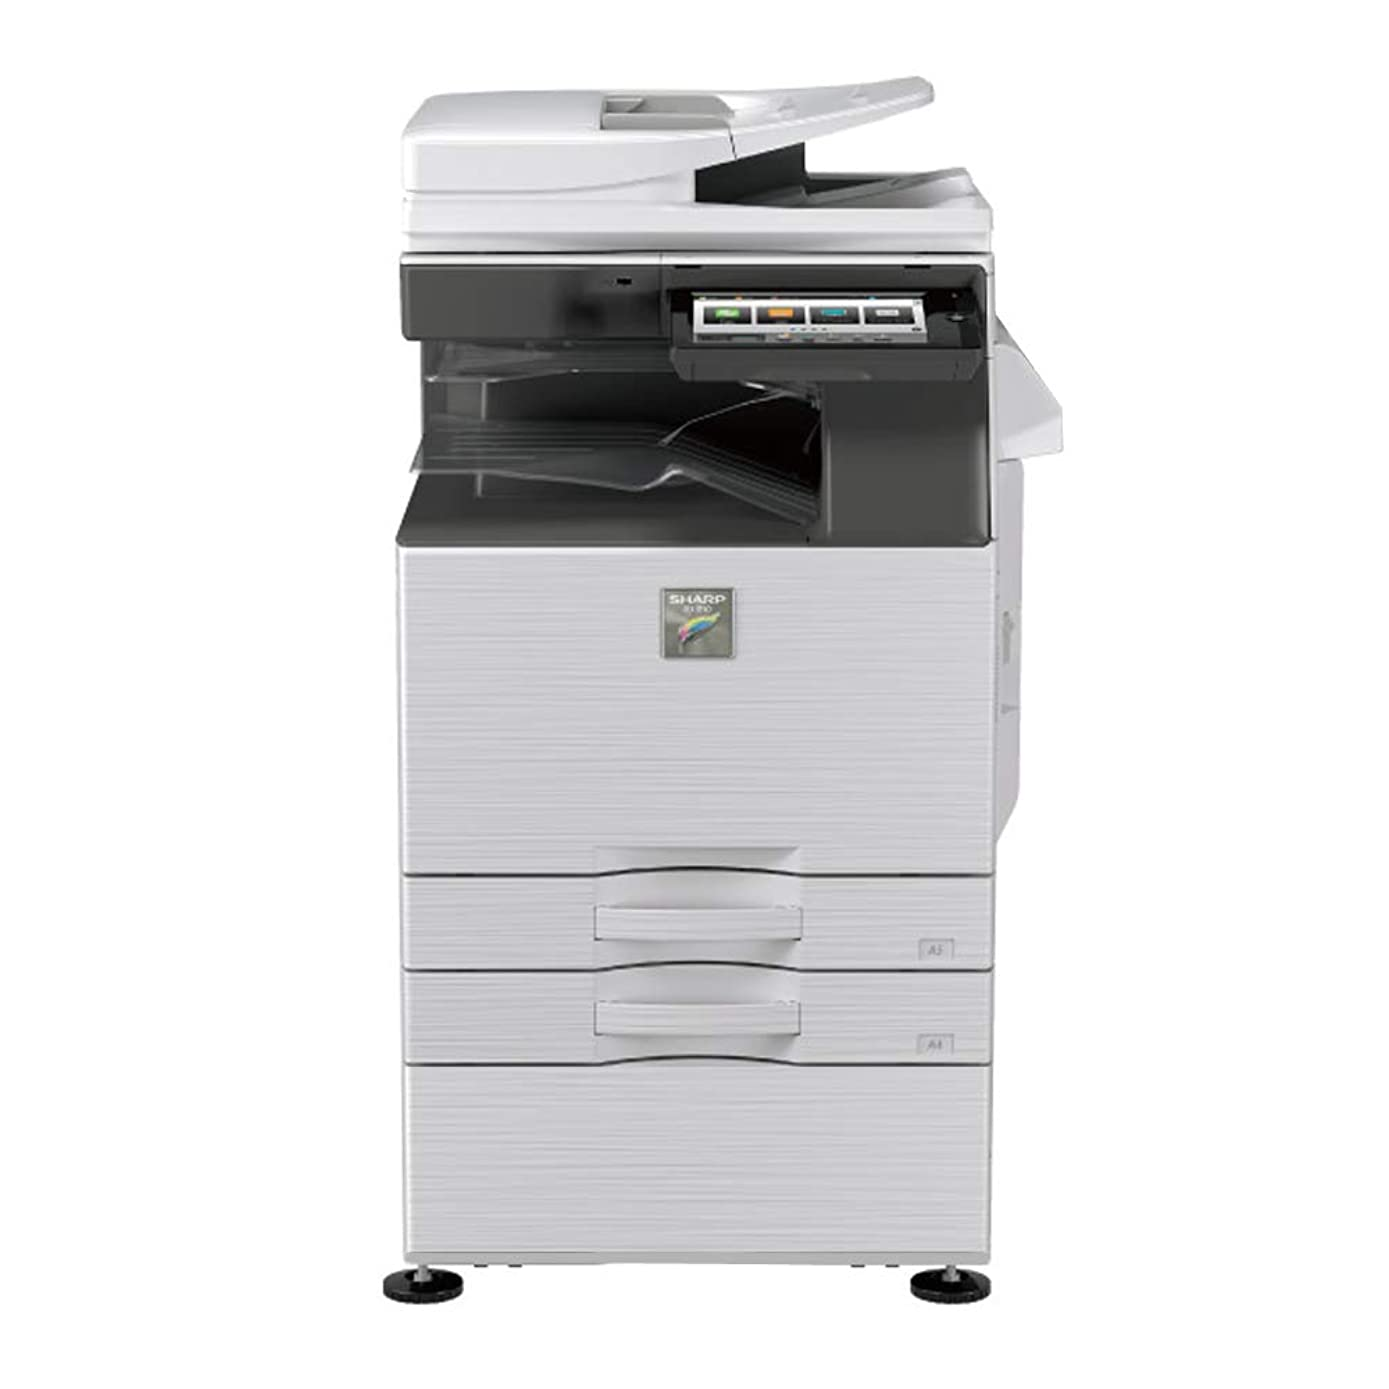 Sharp MX-4050N Tabloid/Ledger-Size Color Laser Multi Function Copier - 40ppm, Copy, Print, Scan, Auto Duplexing, Network Print & Scan, 600 x 600 DPI, 2x500 Sheets Trays, Stand